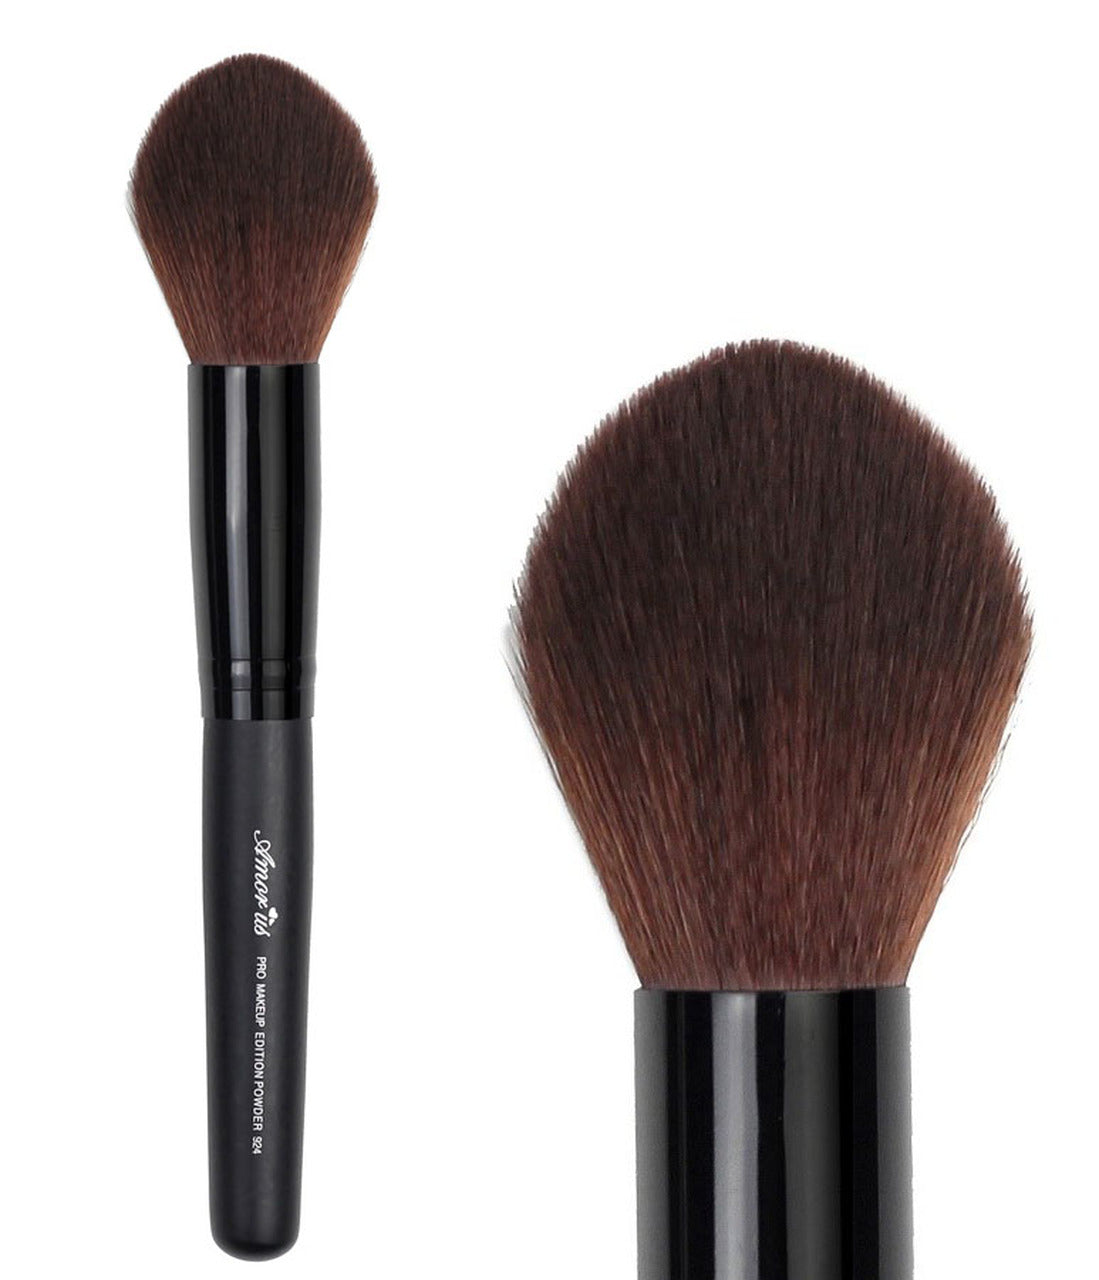 AM-BR924 : Professional Deluxe Pointed Powder Brush 1 DZ